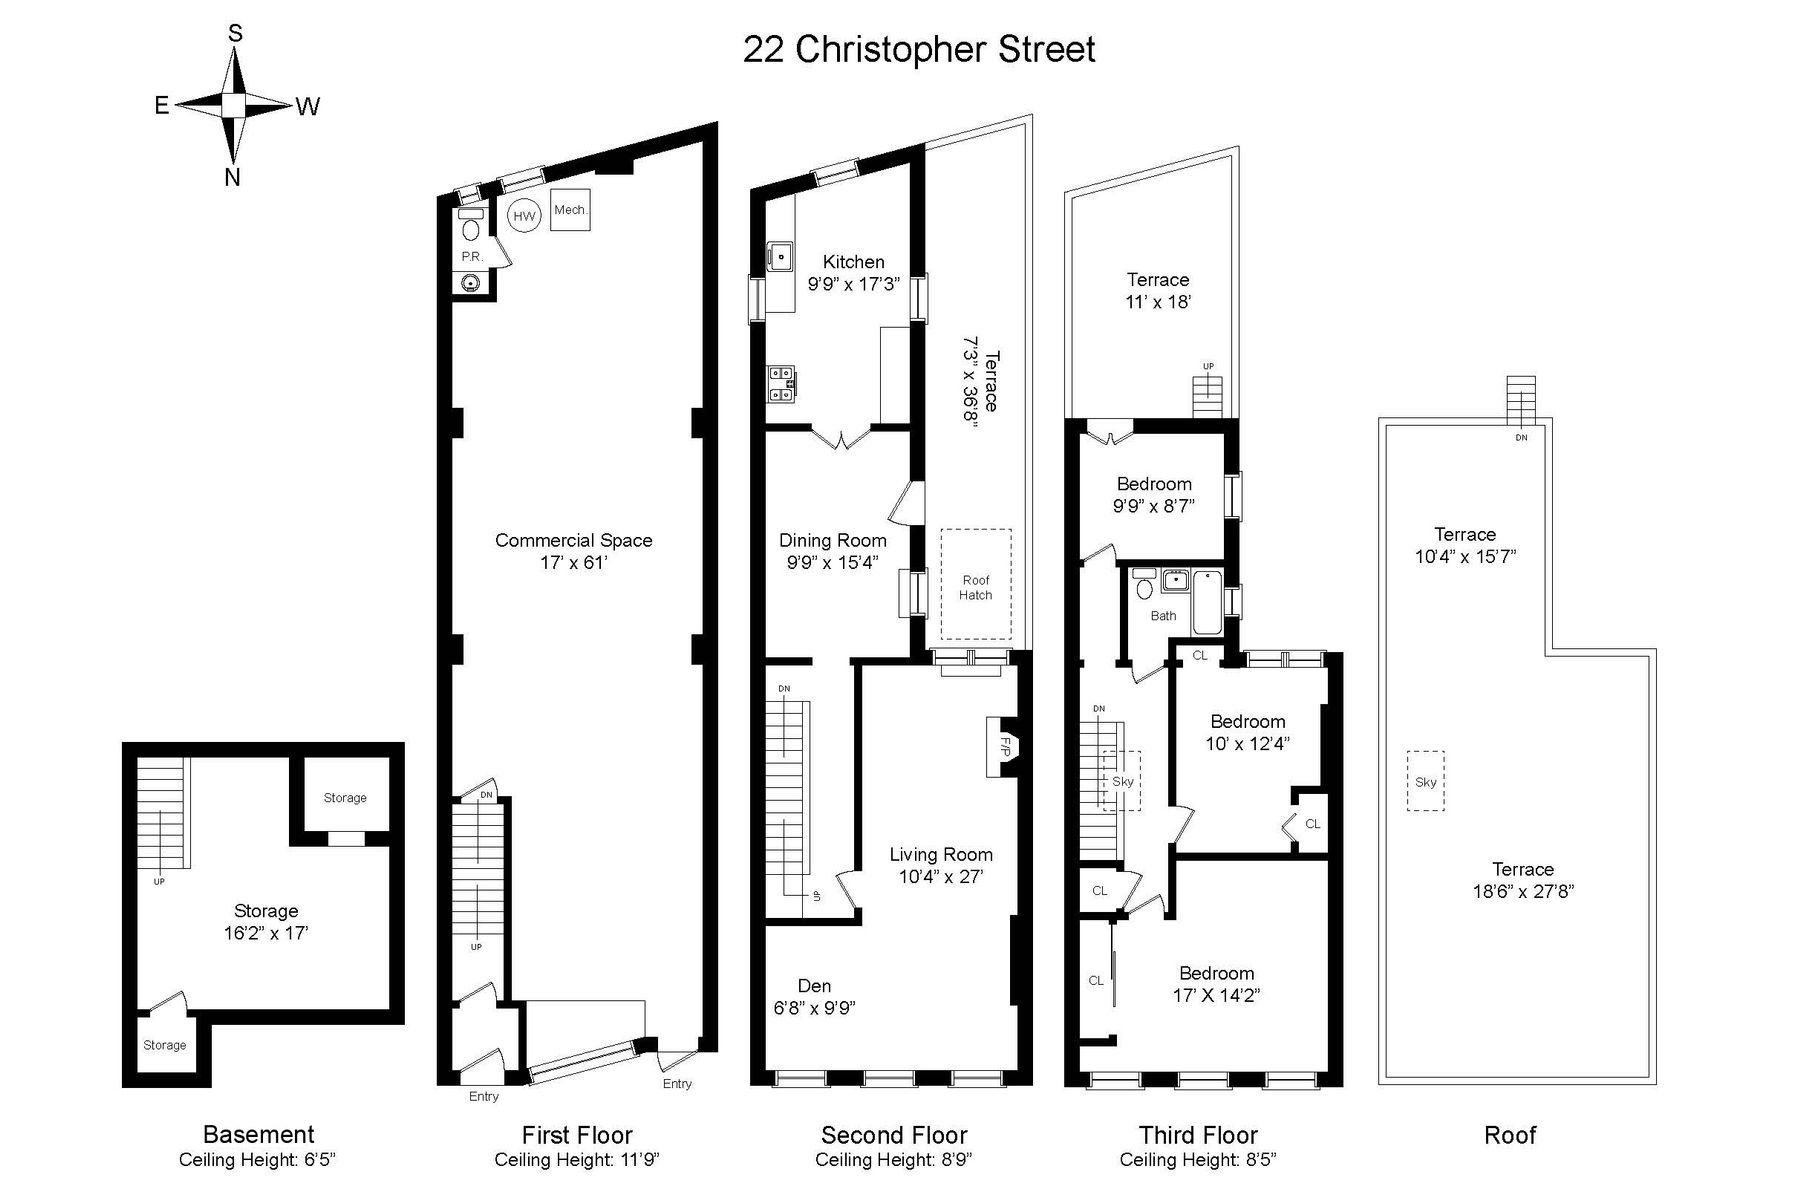 Townhouse for Sale at 22 Christopher Street 22 Christopher Street New York, New York 10014 United States